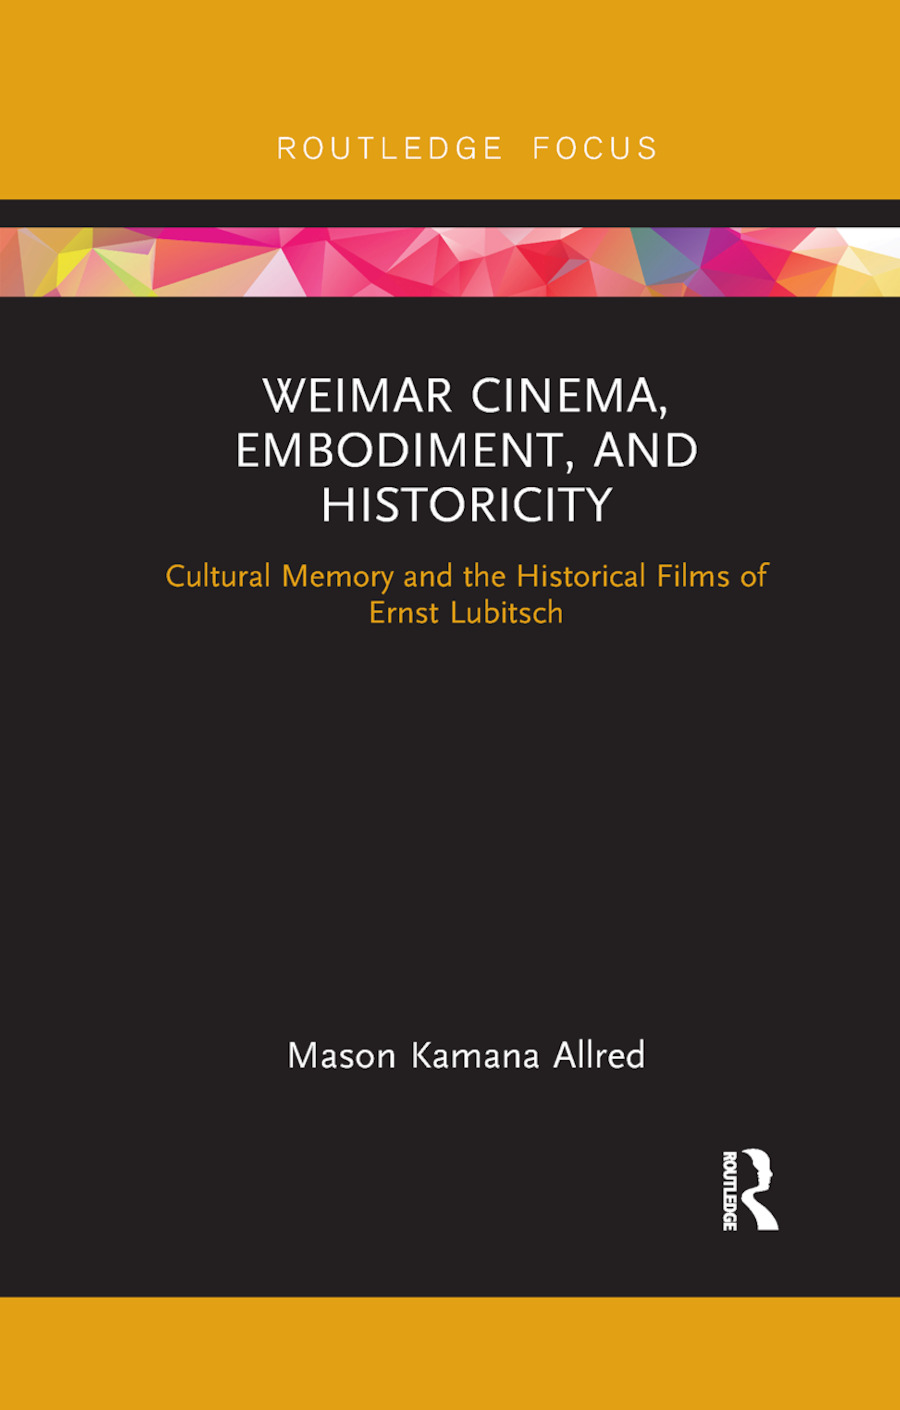 Weimar Cinema, Embodiment, and Historicity: Cultural Memory and the Historical Films of Ernst Lubitsch, 1st Edition (Paperback) book cover